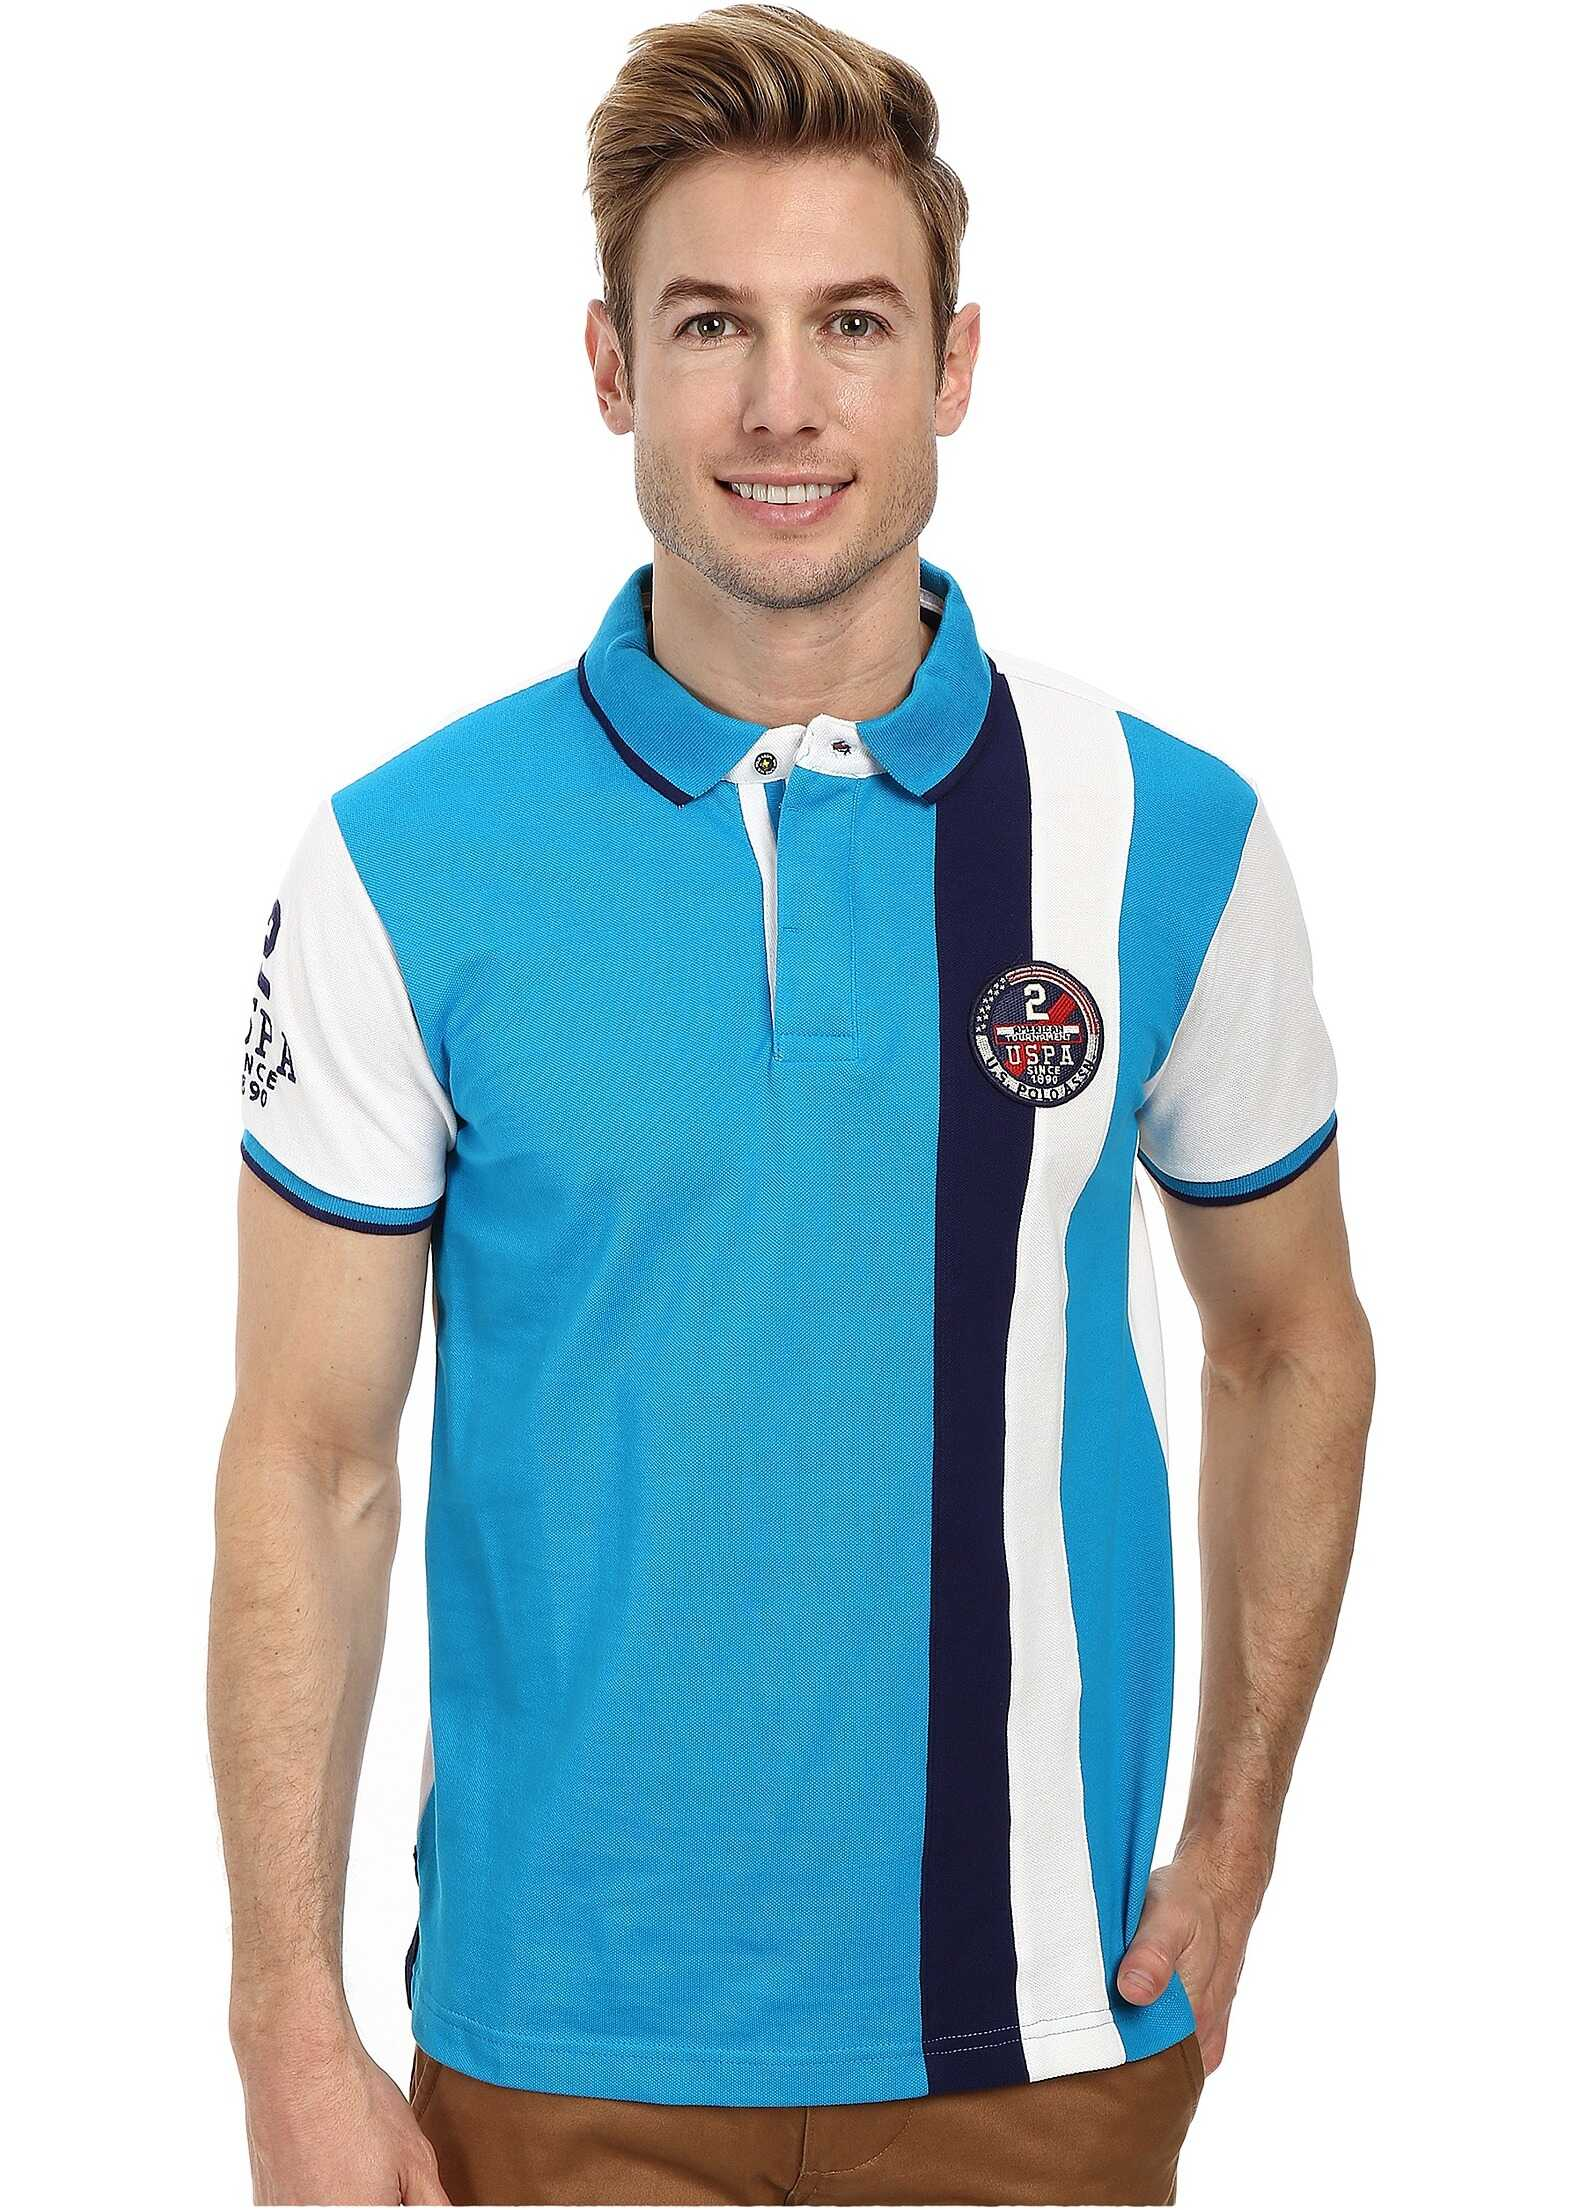 U.S. POLO ASSN. Vertical Stripes Color Block Pique Polo Teal Blue